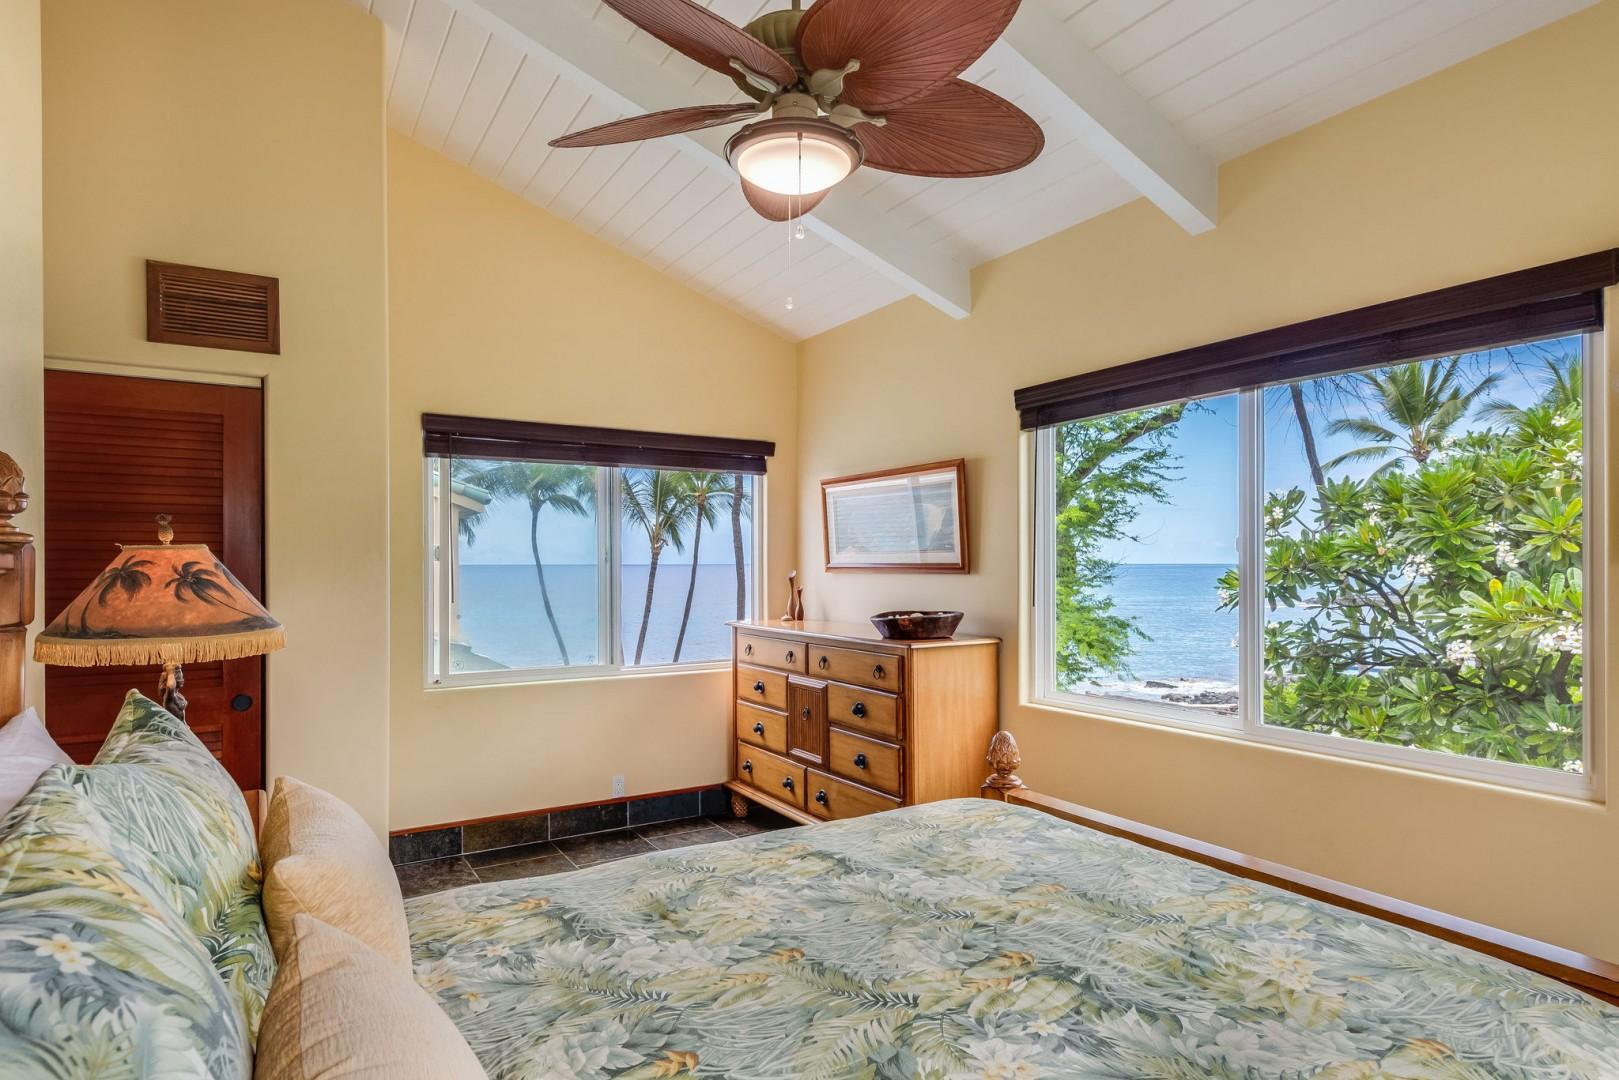 Hale Moana Master bedroom with ocean views